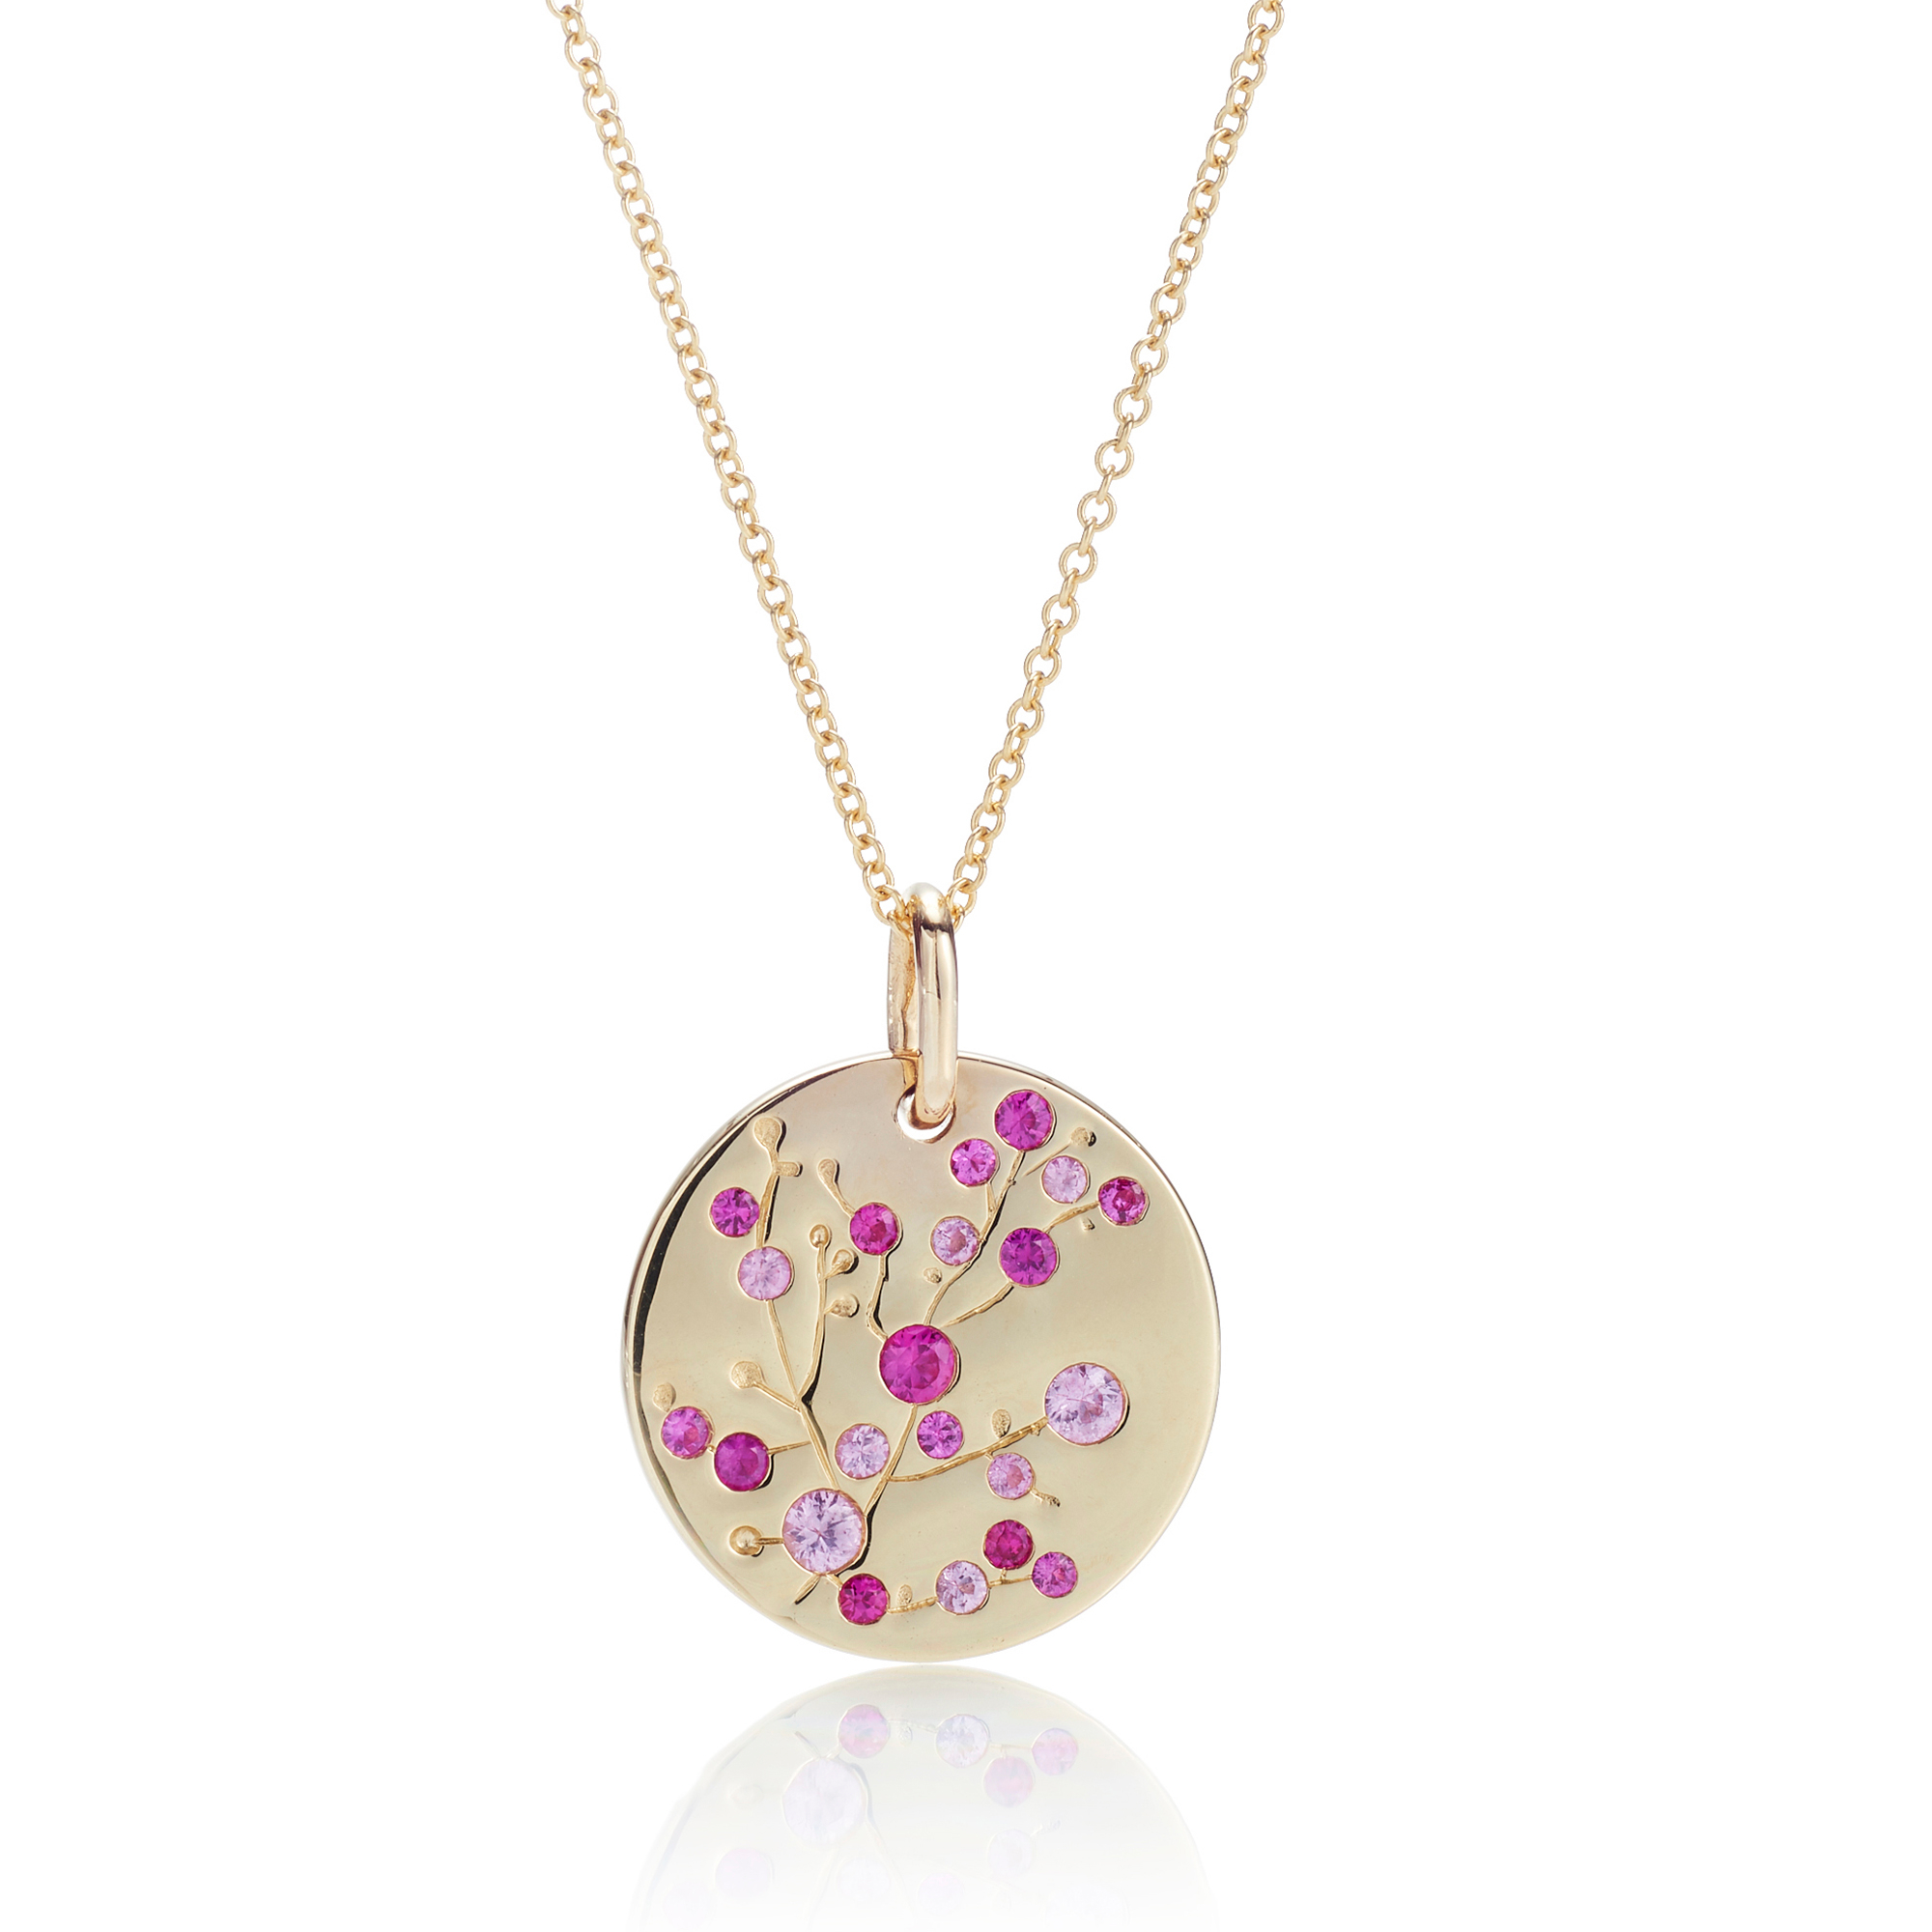 Gump's Pink Sapphire Cherry Blossom Disc Necklace